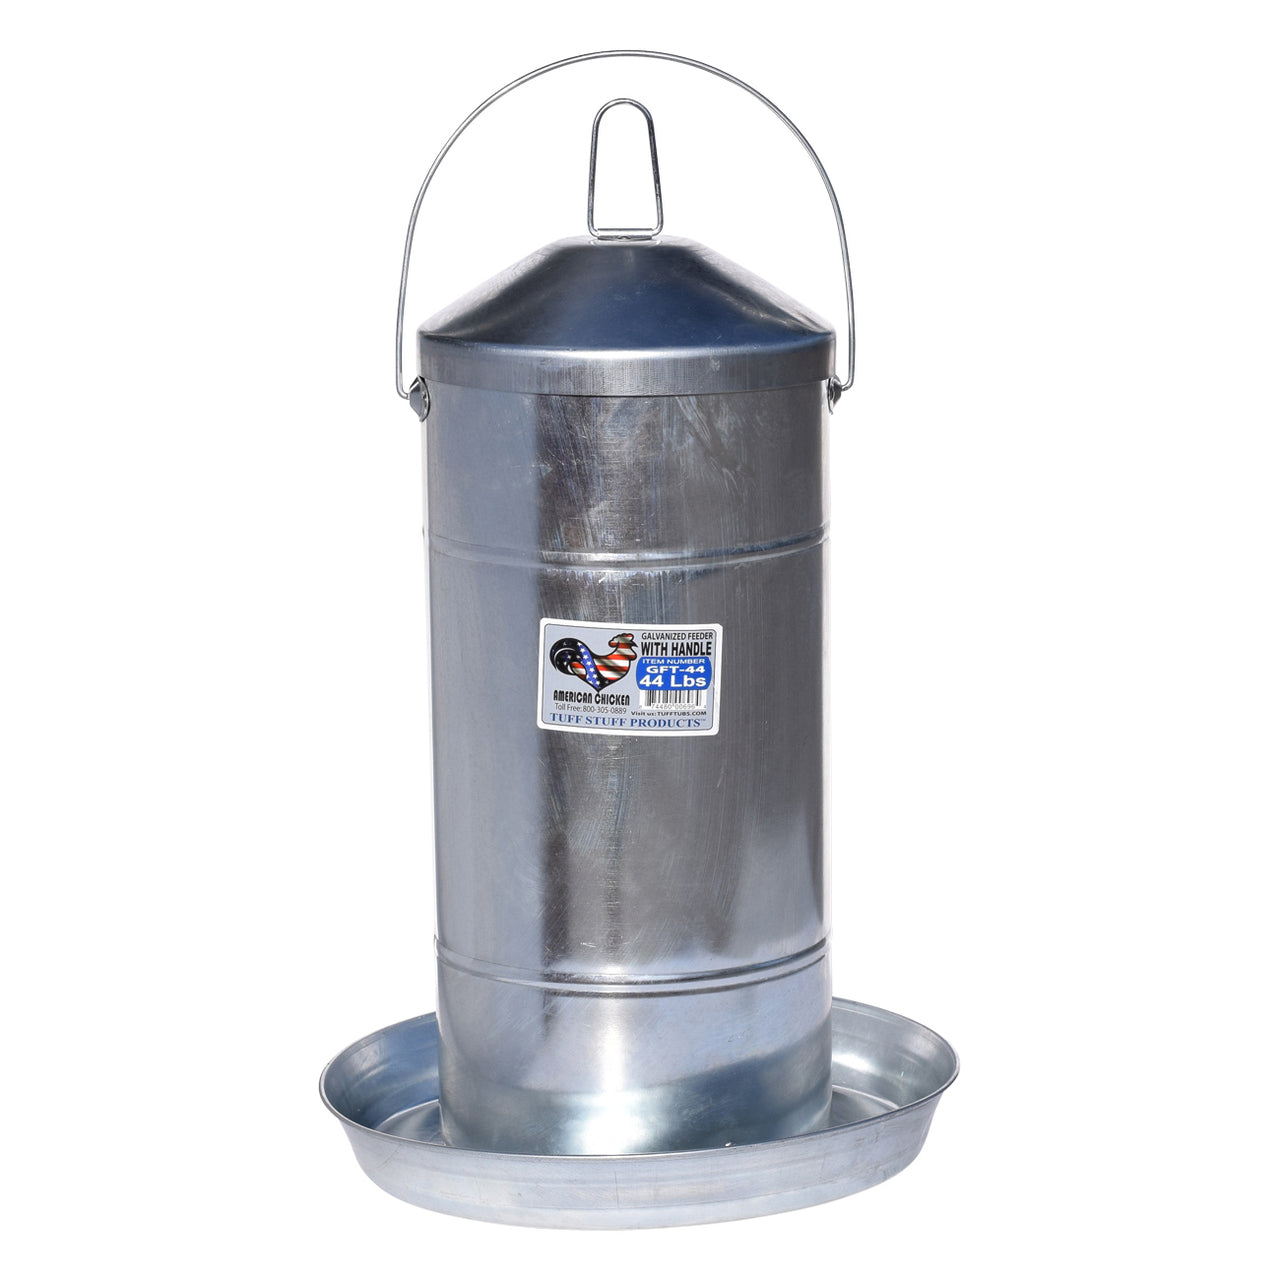 Tuff Stuff Galvanized Poultry Feeder W/ Handle - 44Lbs - Poultry Feeders Drinkers Tuff Stuff - Canada